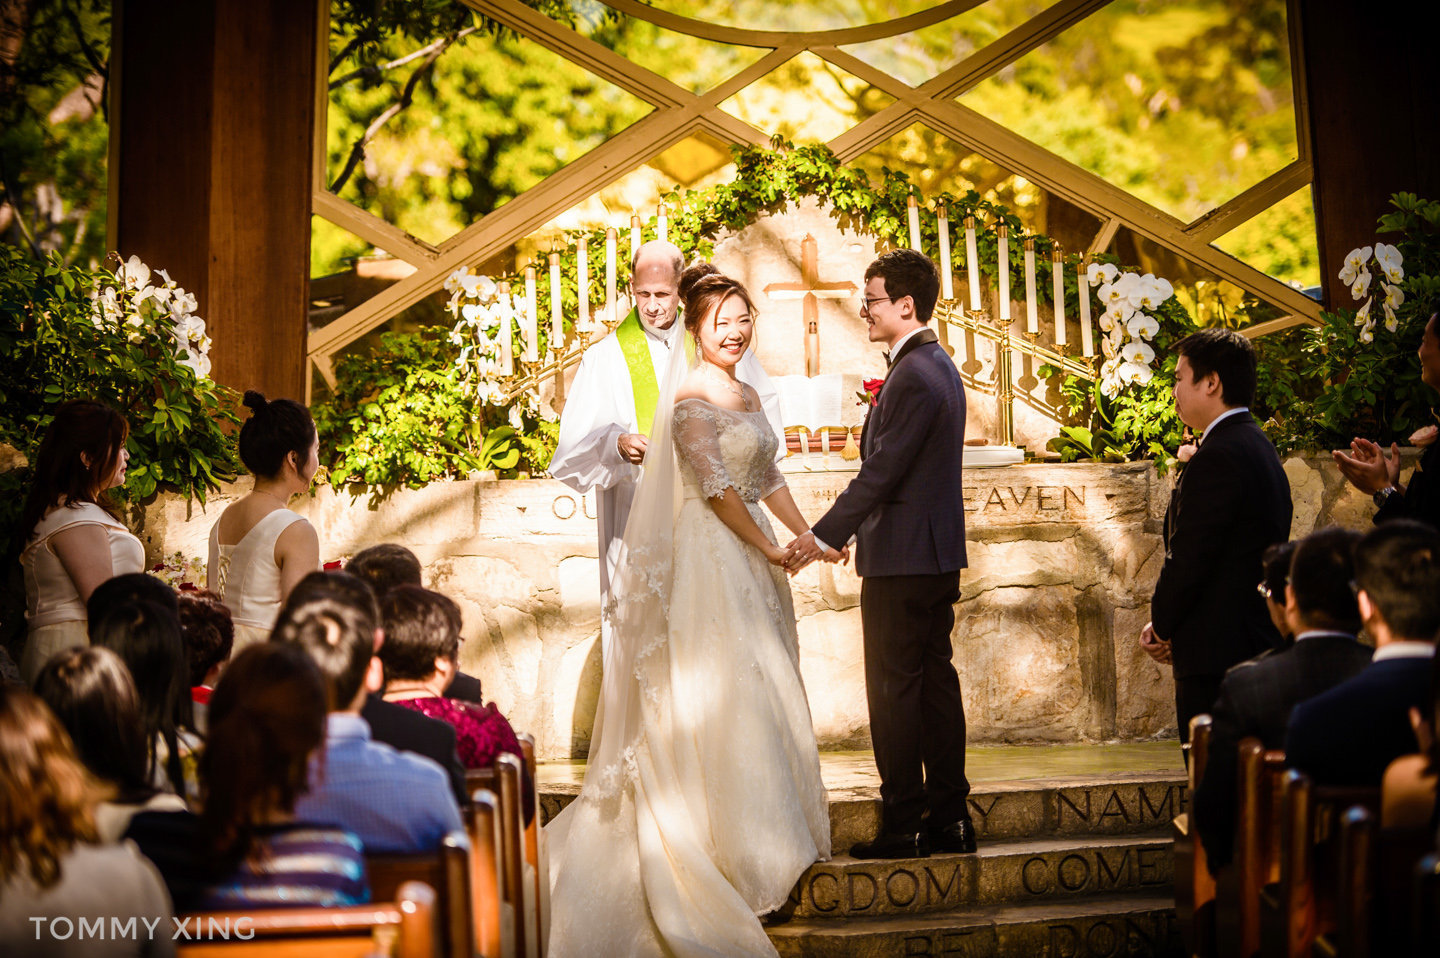 Los Angeles Wedding Photographer 洛杉矶婚礼婚纱摄影师 Tommy Xing-150.JPG